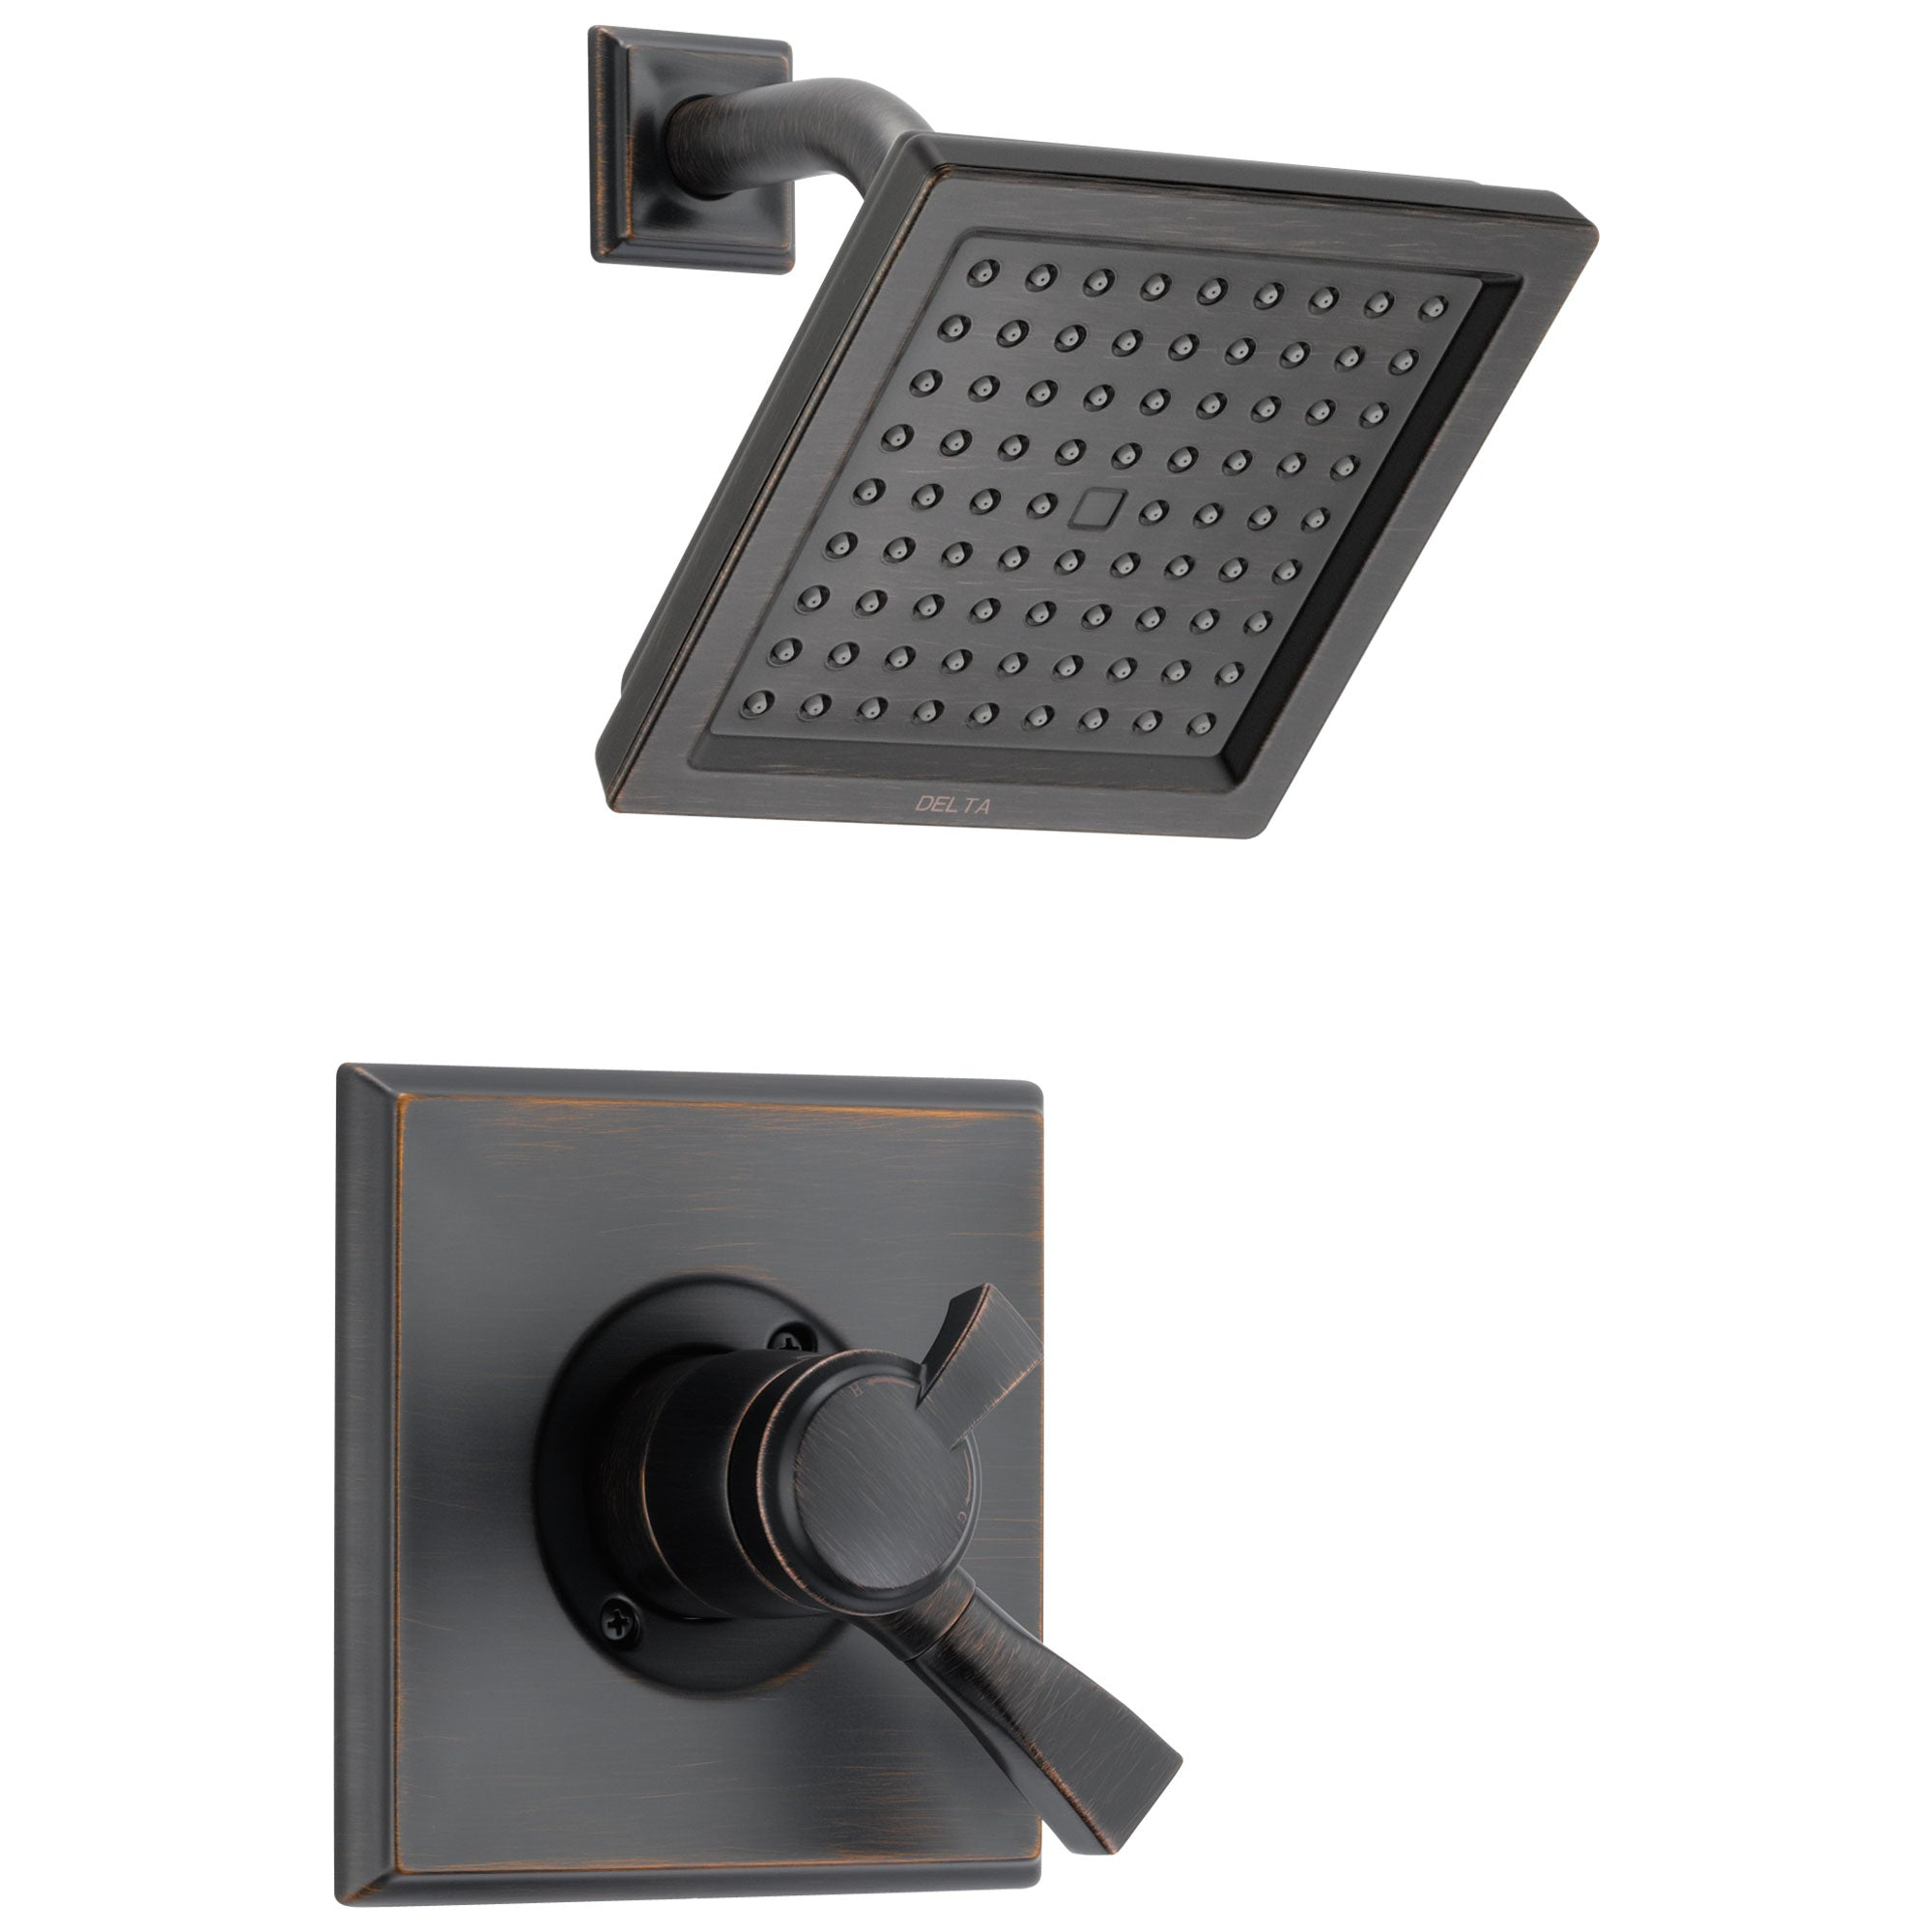 Delta Dryden Venetian Bronze Finish Monitor 17 Series Water Efficient Shower only Faucet Trim Kit (Requires Valve) DT17251RBWE